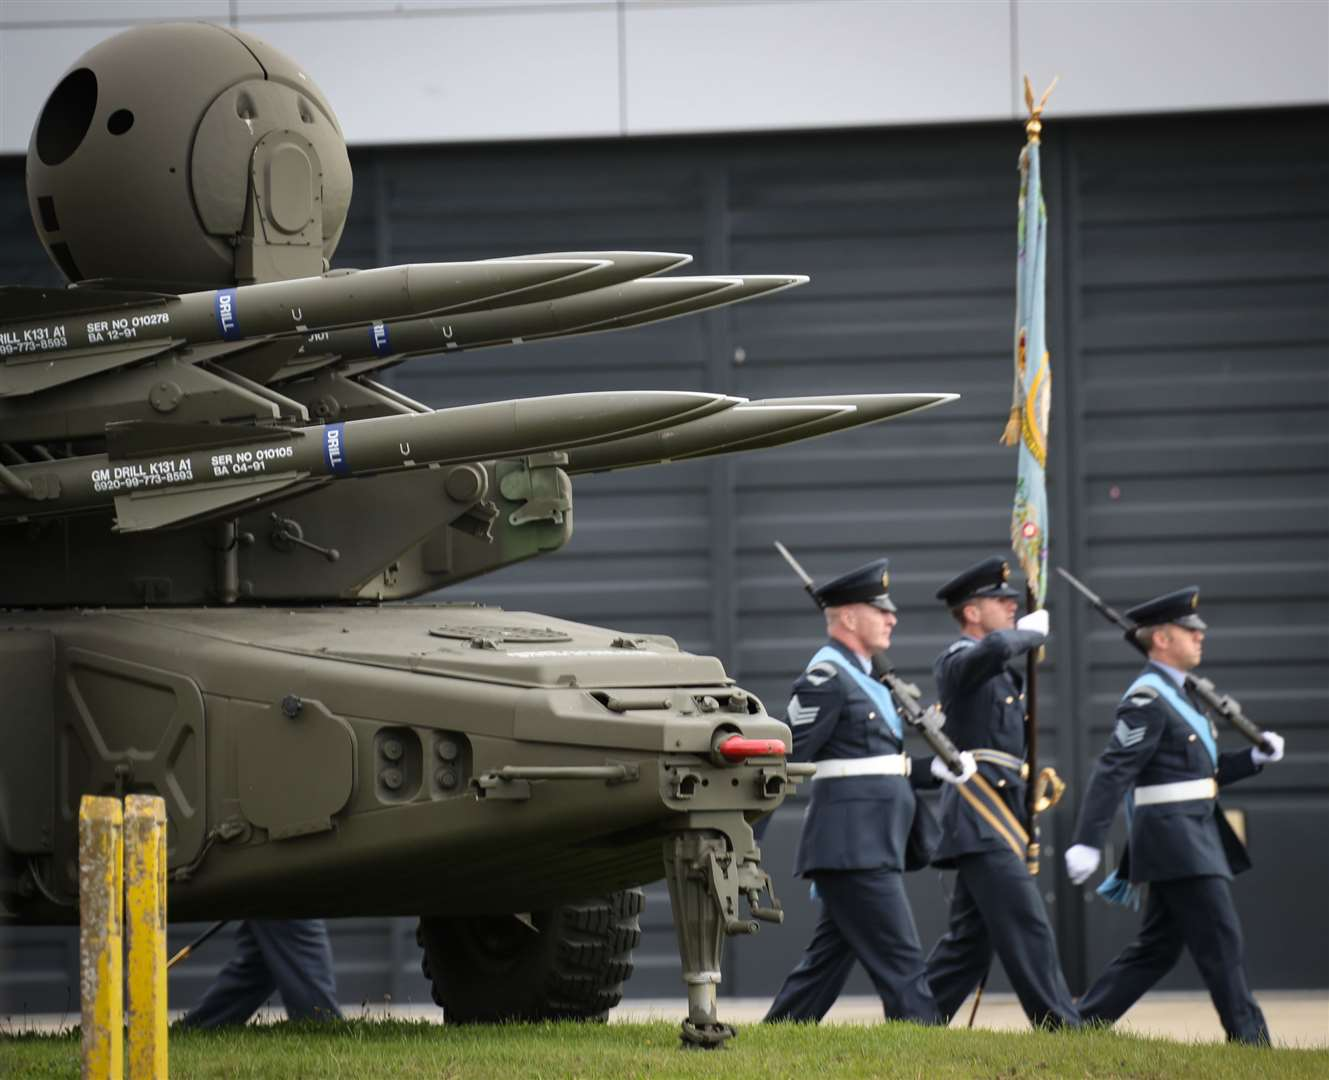 RAF Marham welcomes the 15 Squadron Royal Air Force Regiment to the station during a parade on Tuesday. (42223106)